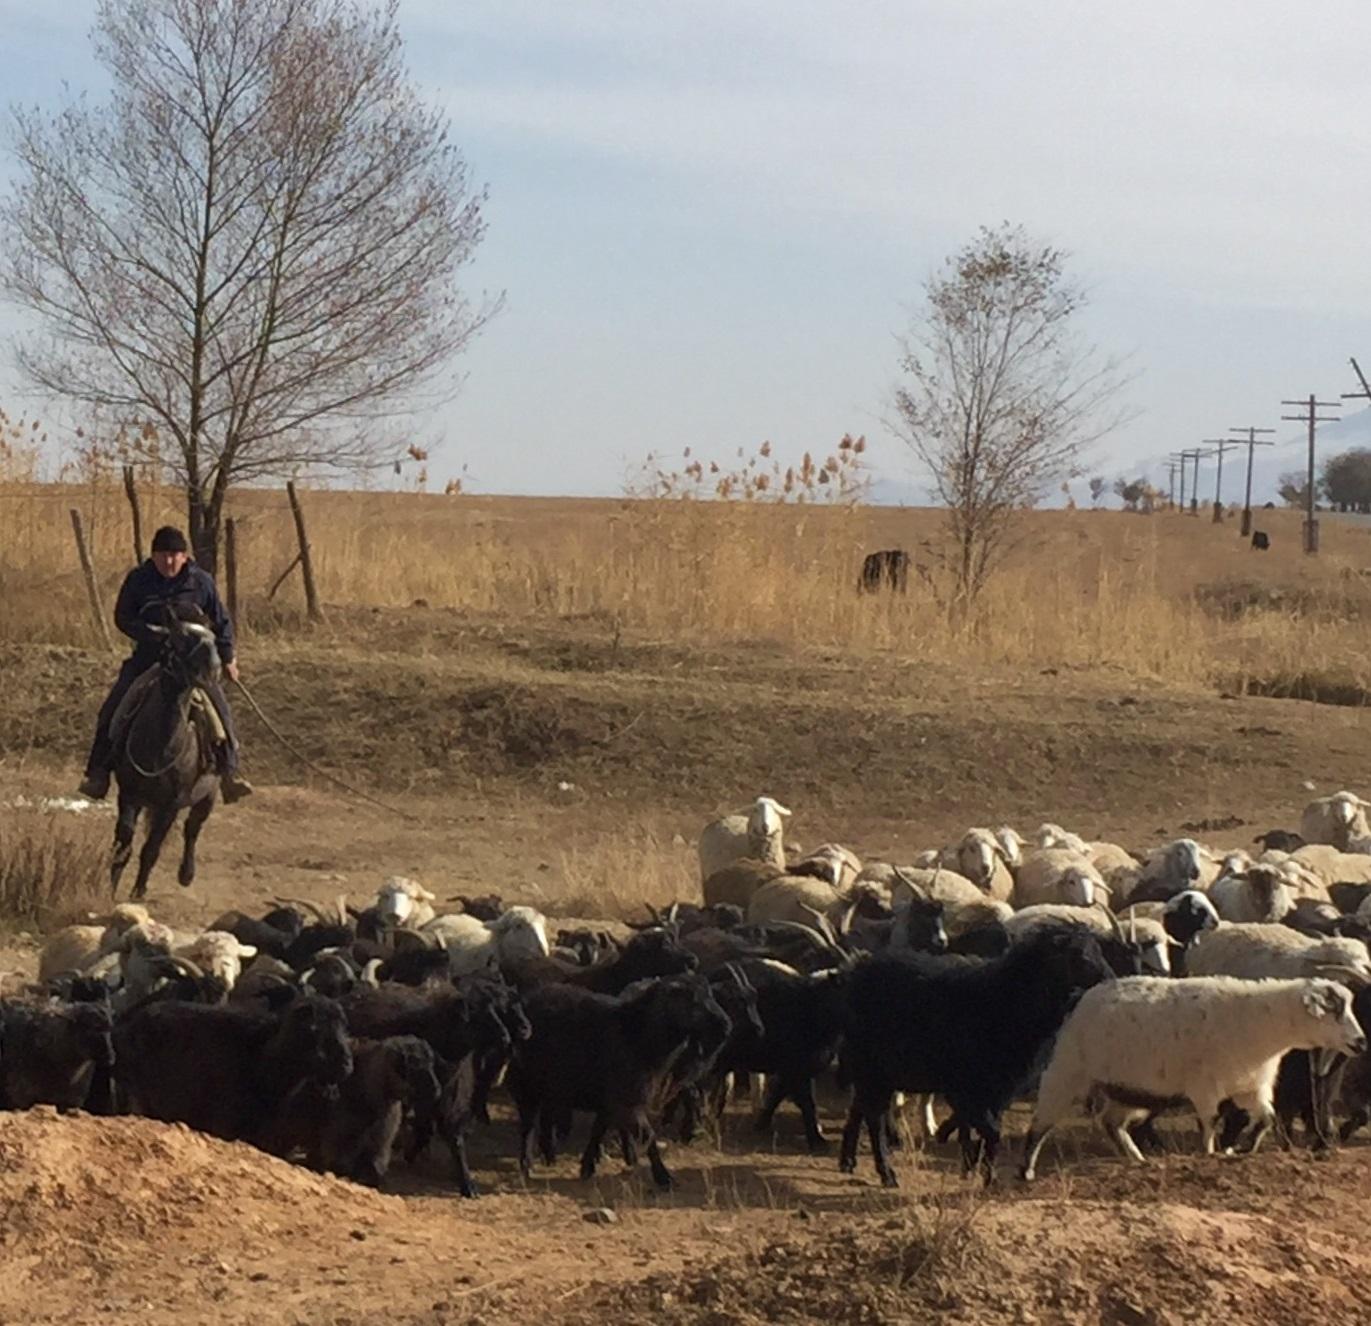 Herding sheep on horseback in upper Naryn Valley, November 2016 (source: B. Orlove